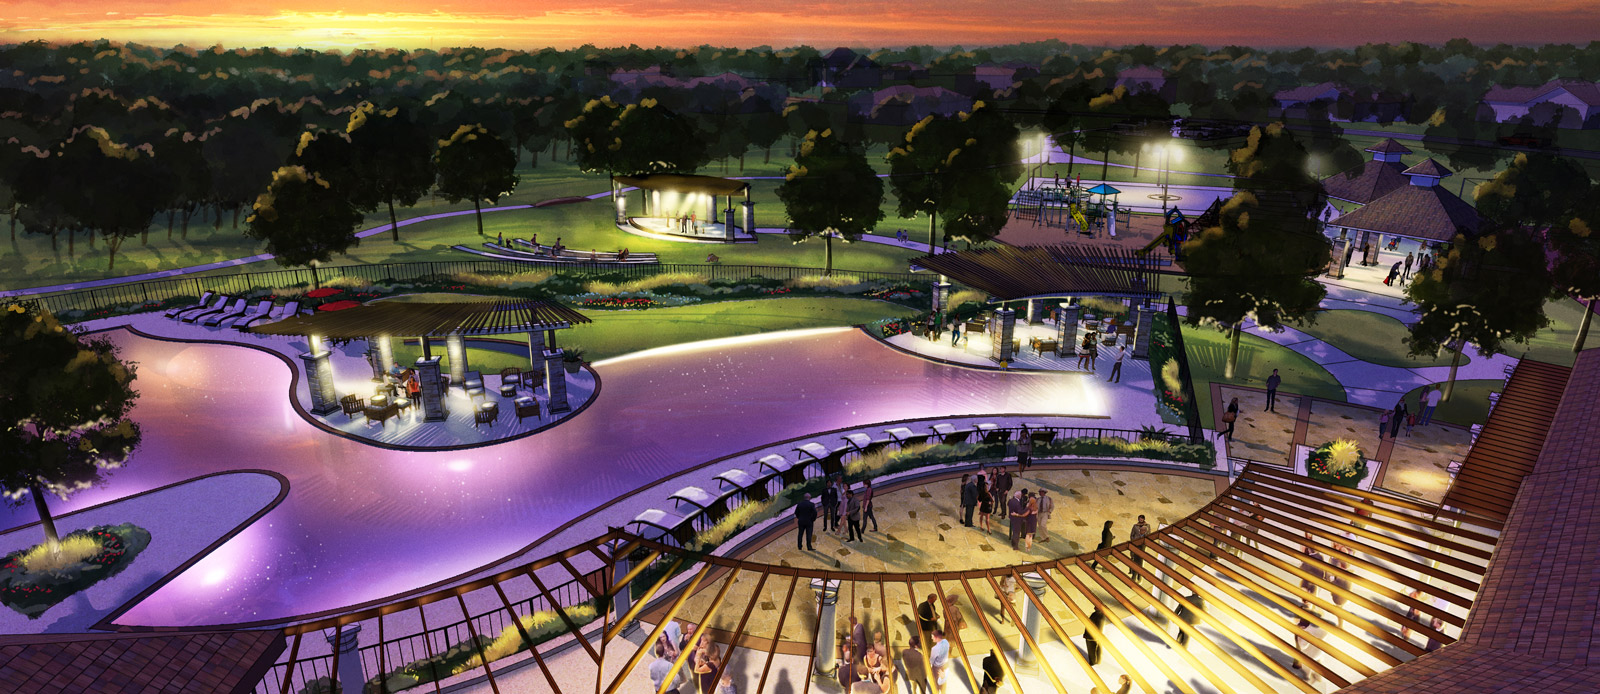 Riverchase-Amenity-Center-Aerial-Perspective-3-Revised-042415